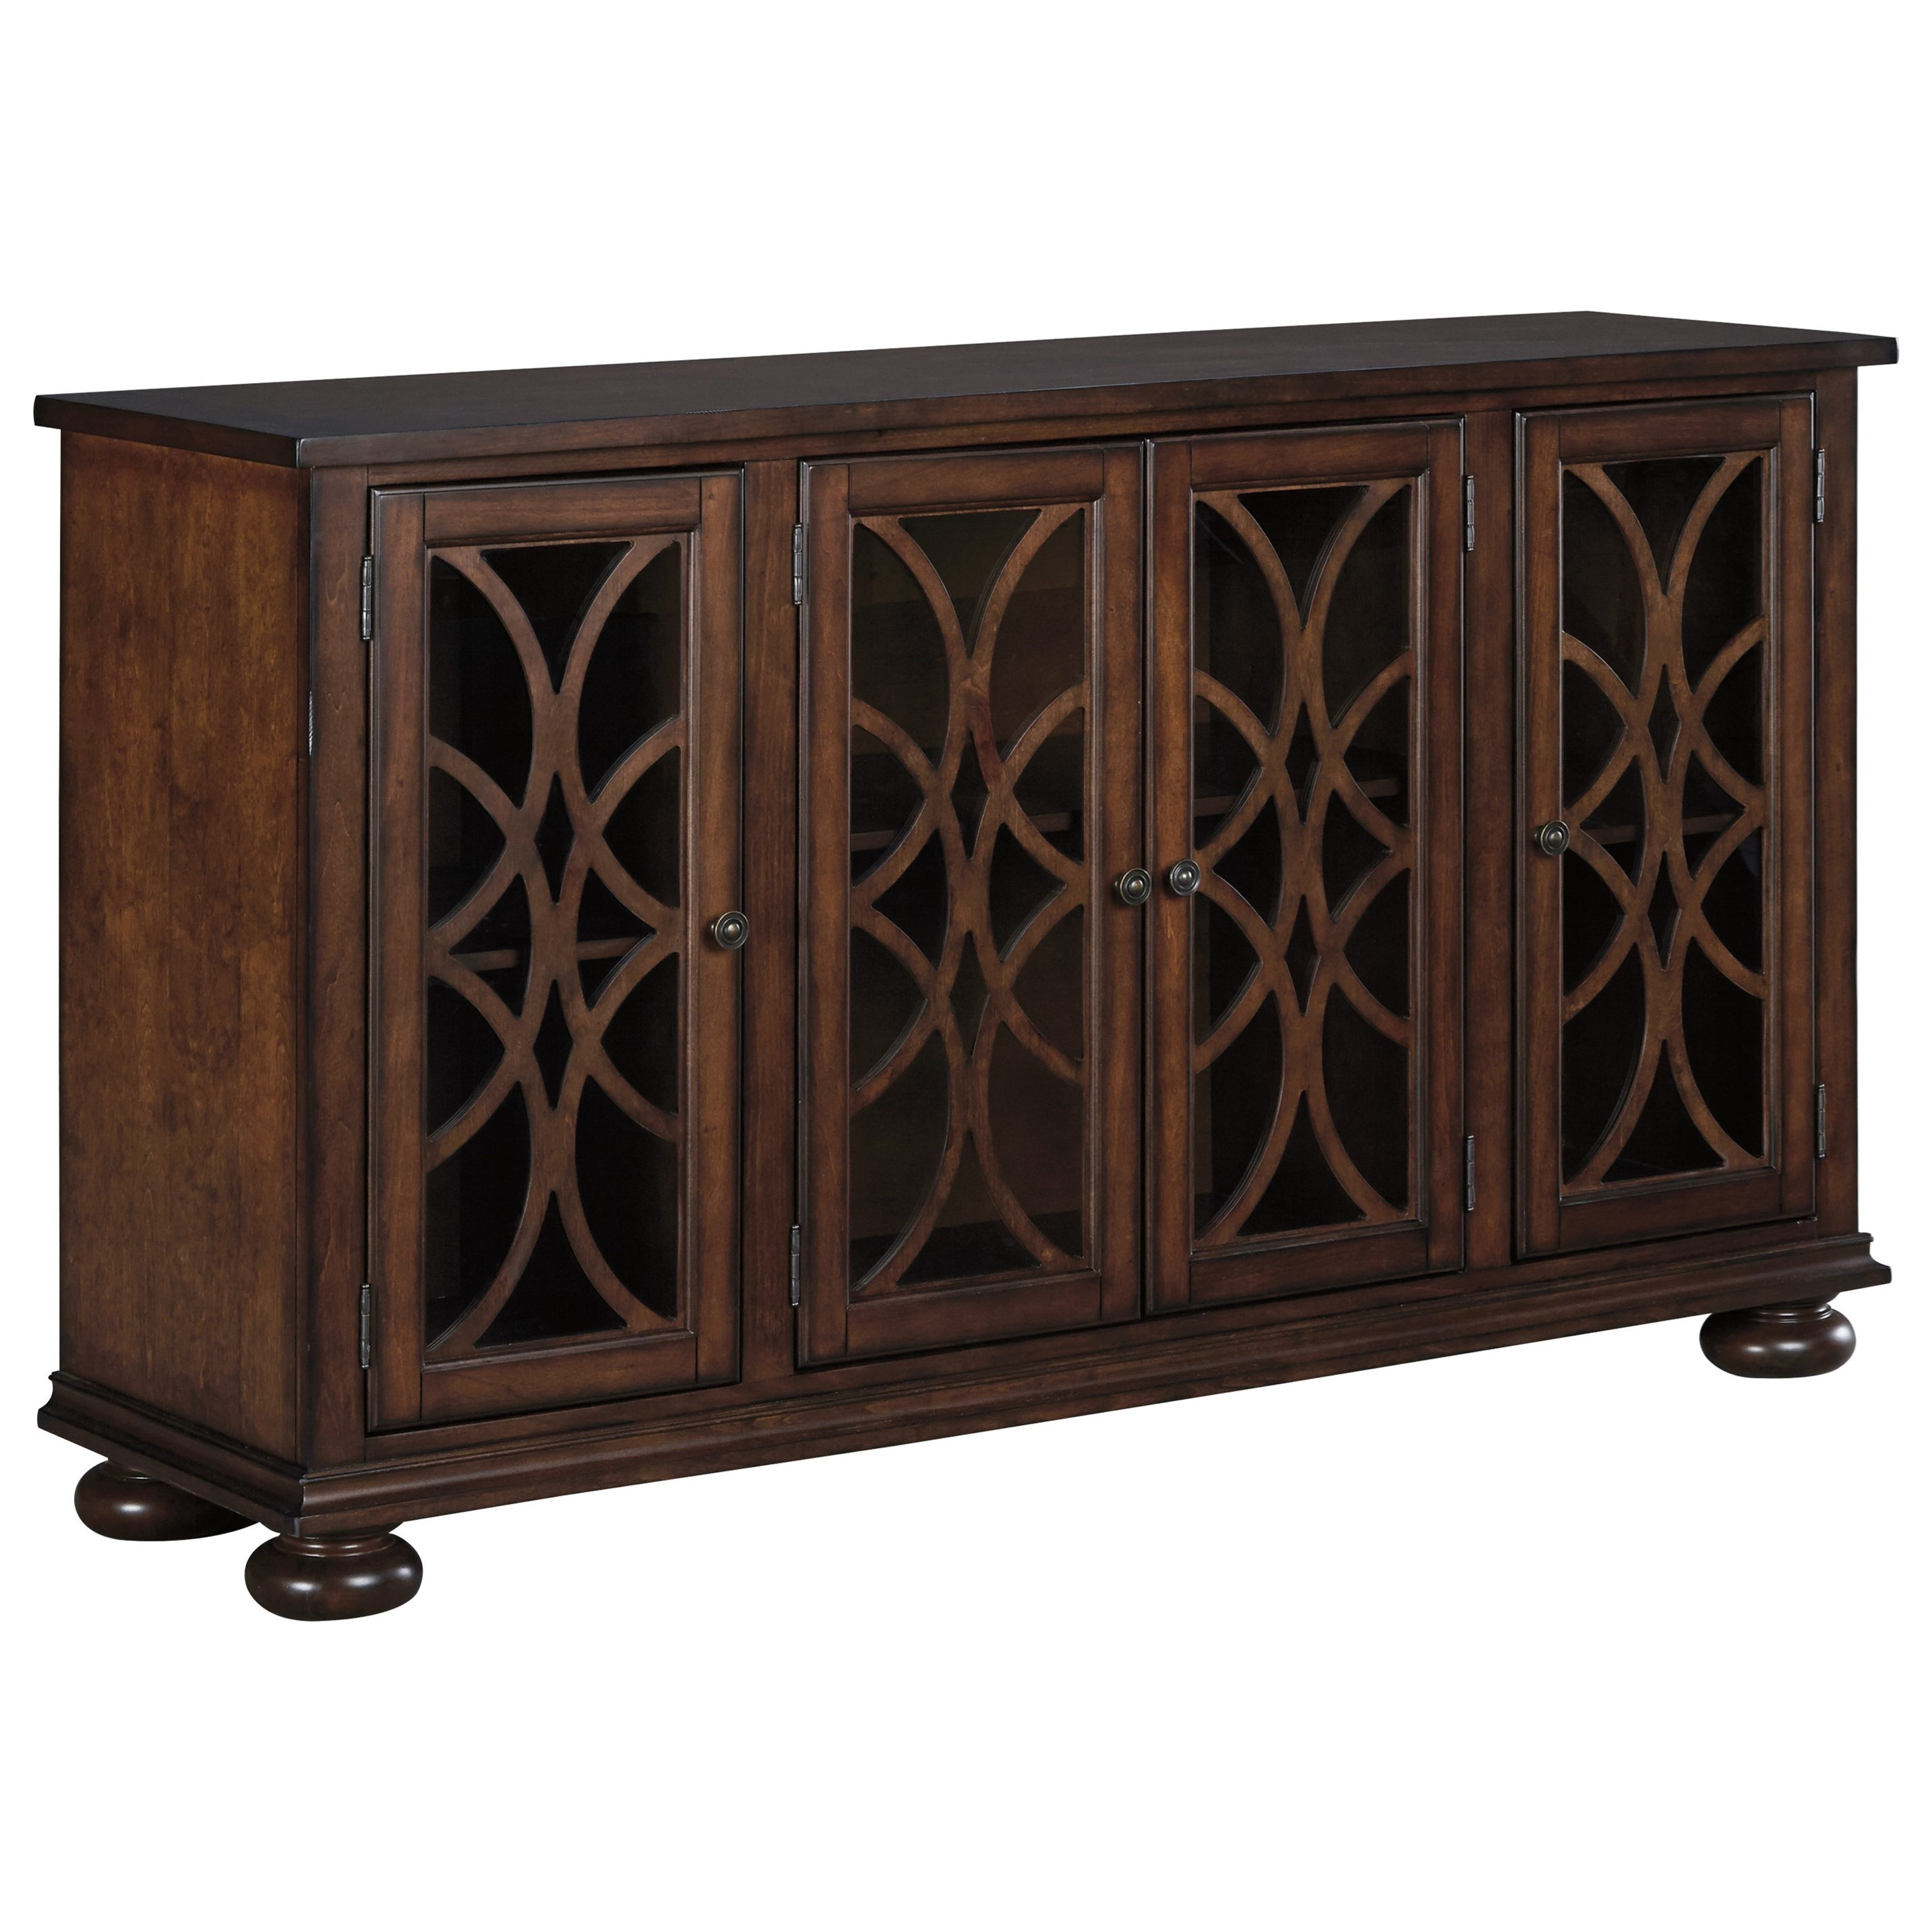 Traditional Dining Room Server With Glass/Wood Grille Doors